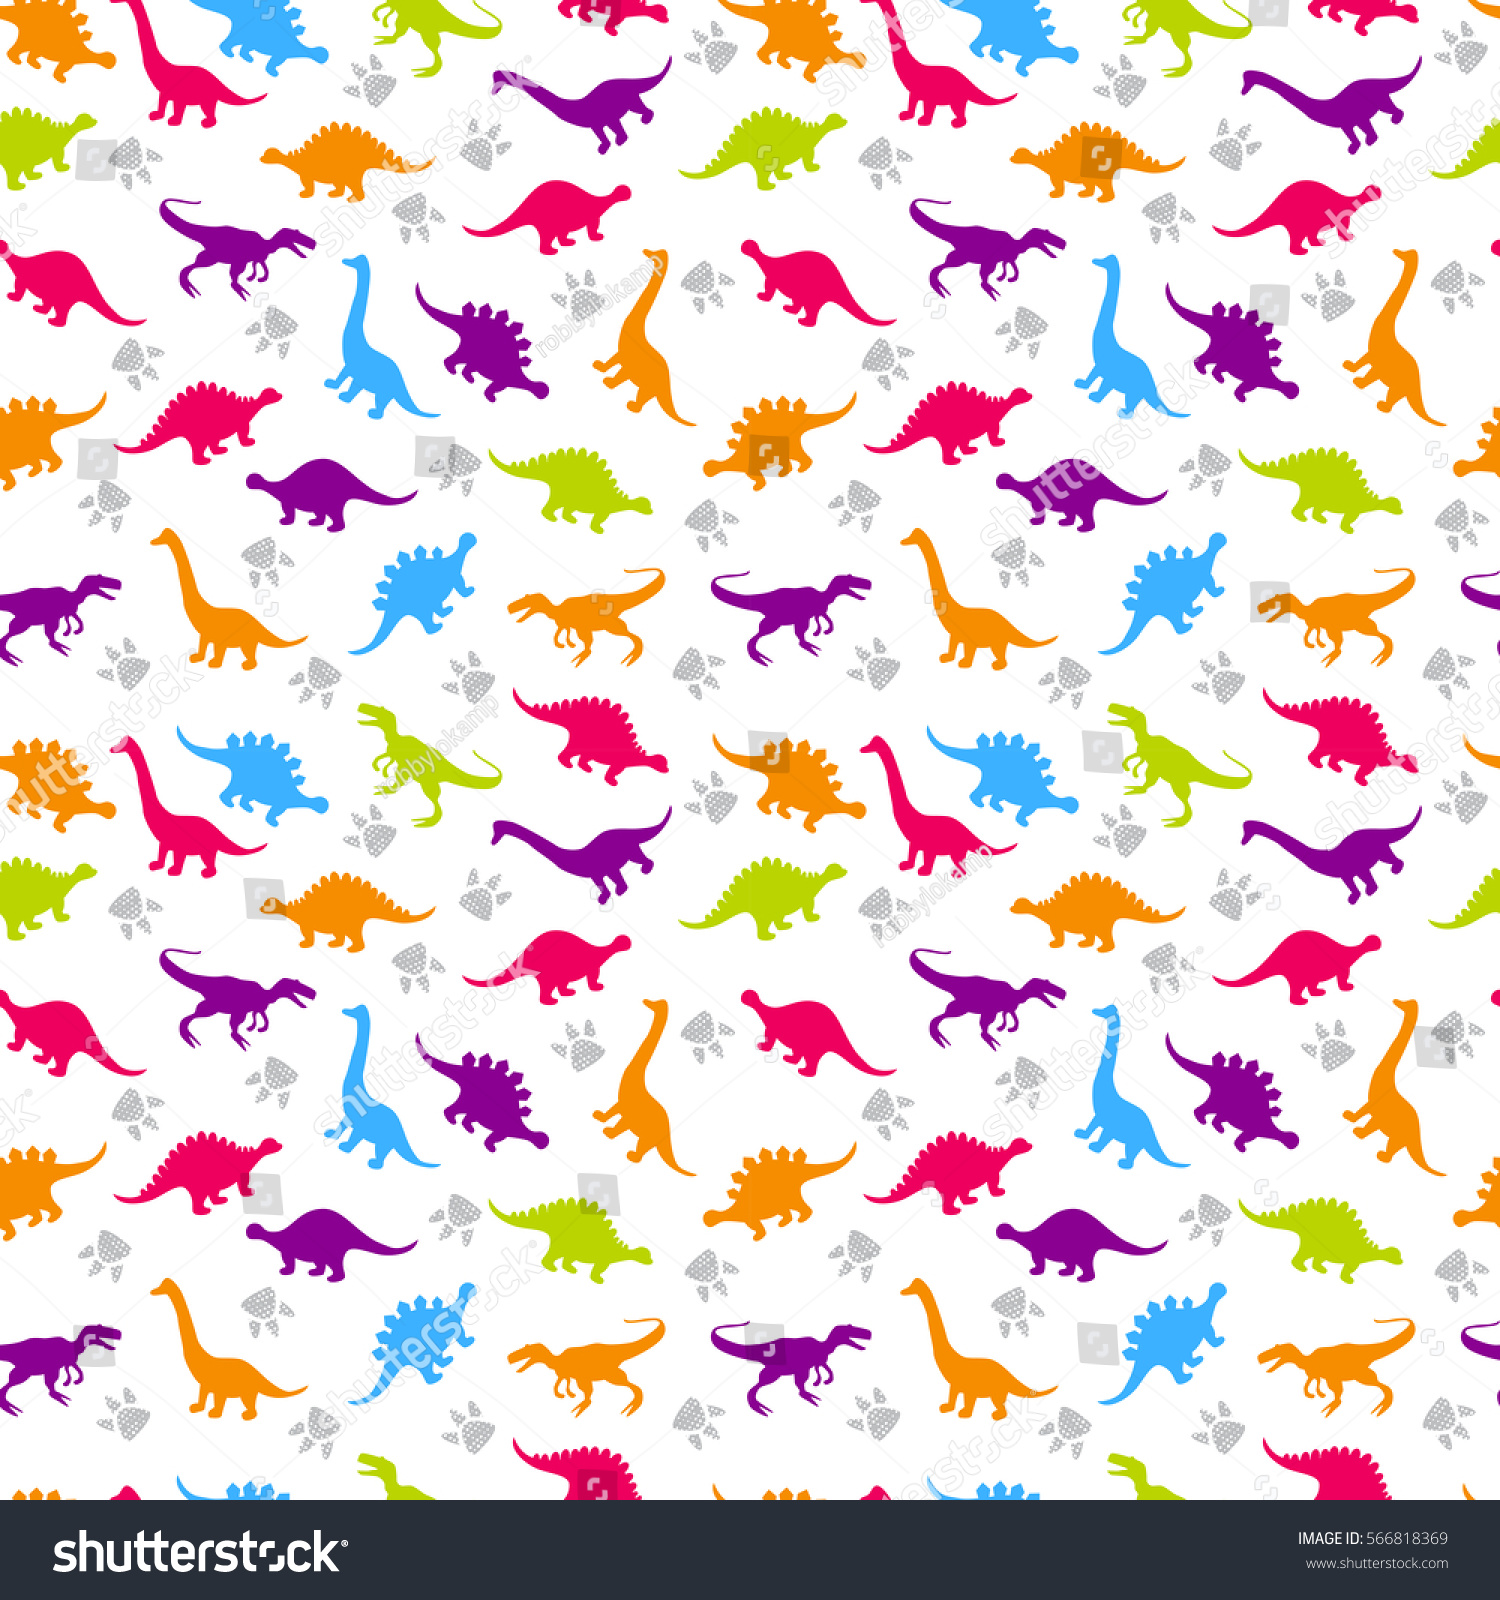 Cute kids pattern girls boys colorful stock vector 566818369 shutterstock - Colors for girls ...